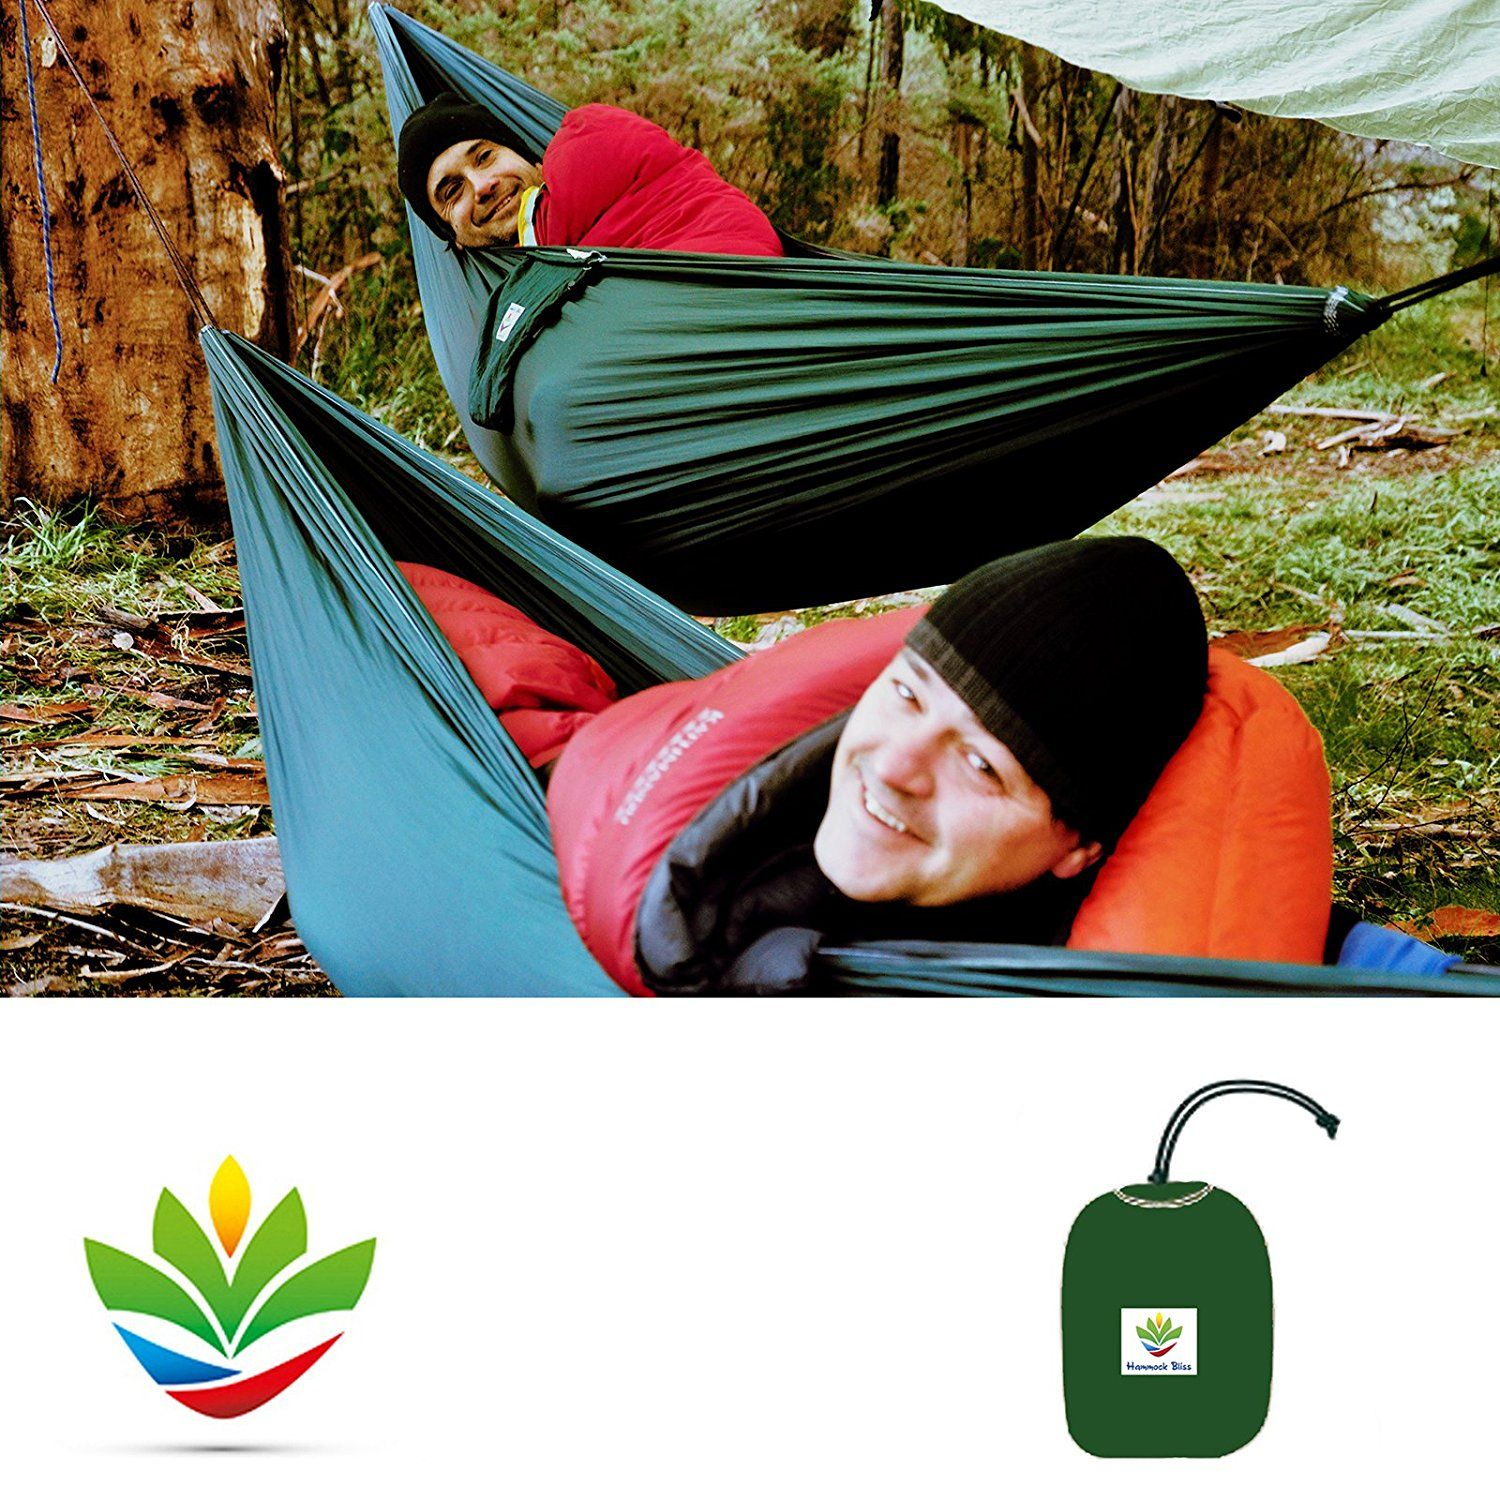 Hammock Bliss Single Quality You Can Trust 100 Rope Per Side Included Portable Hammock Ideal For Camping Backpackin Kayak Trip Portable Hammock Hammock